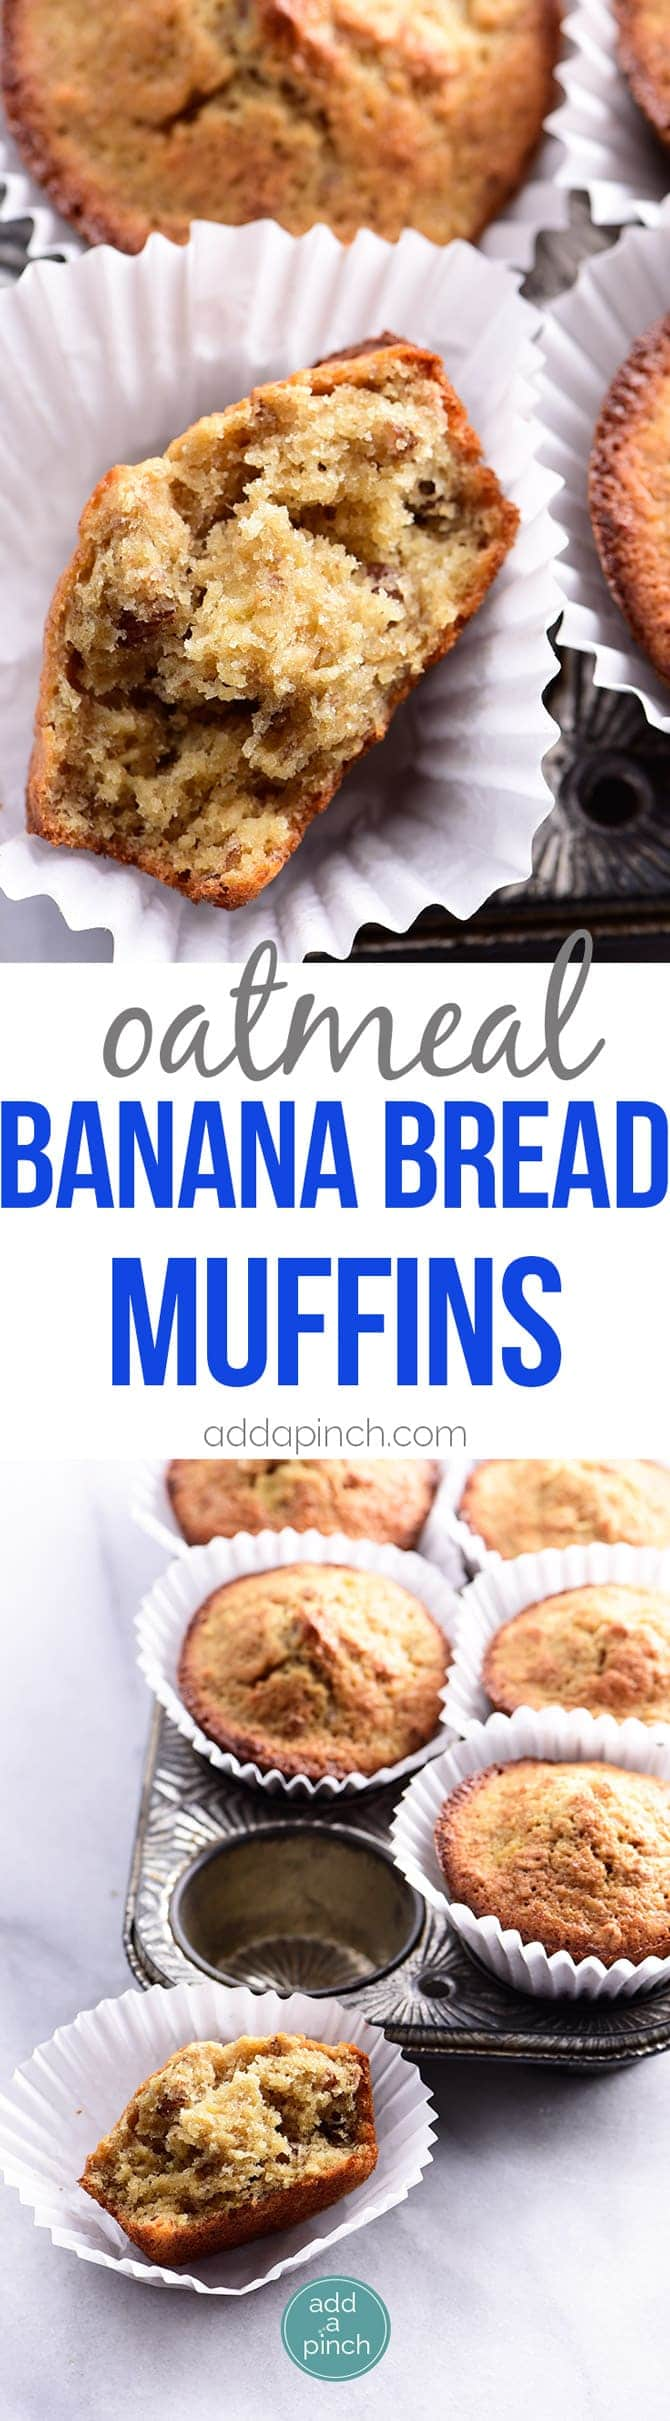 Oatmeal Banana Bread Muffins Recipe - Oatmeal Banana Bread Muffins make a welcome addition to any morning! Made with simple ingredients and always a favorite! // addapinch.com